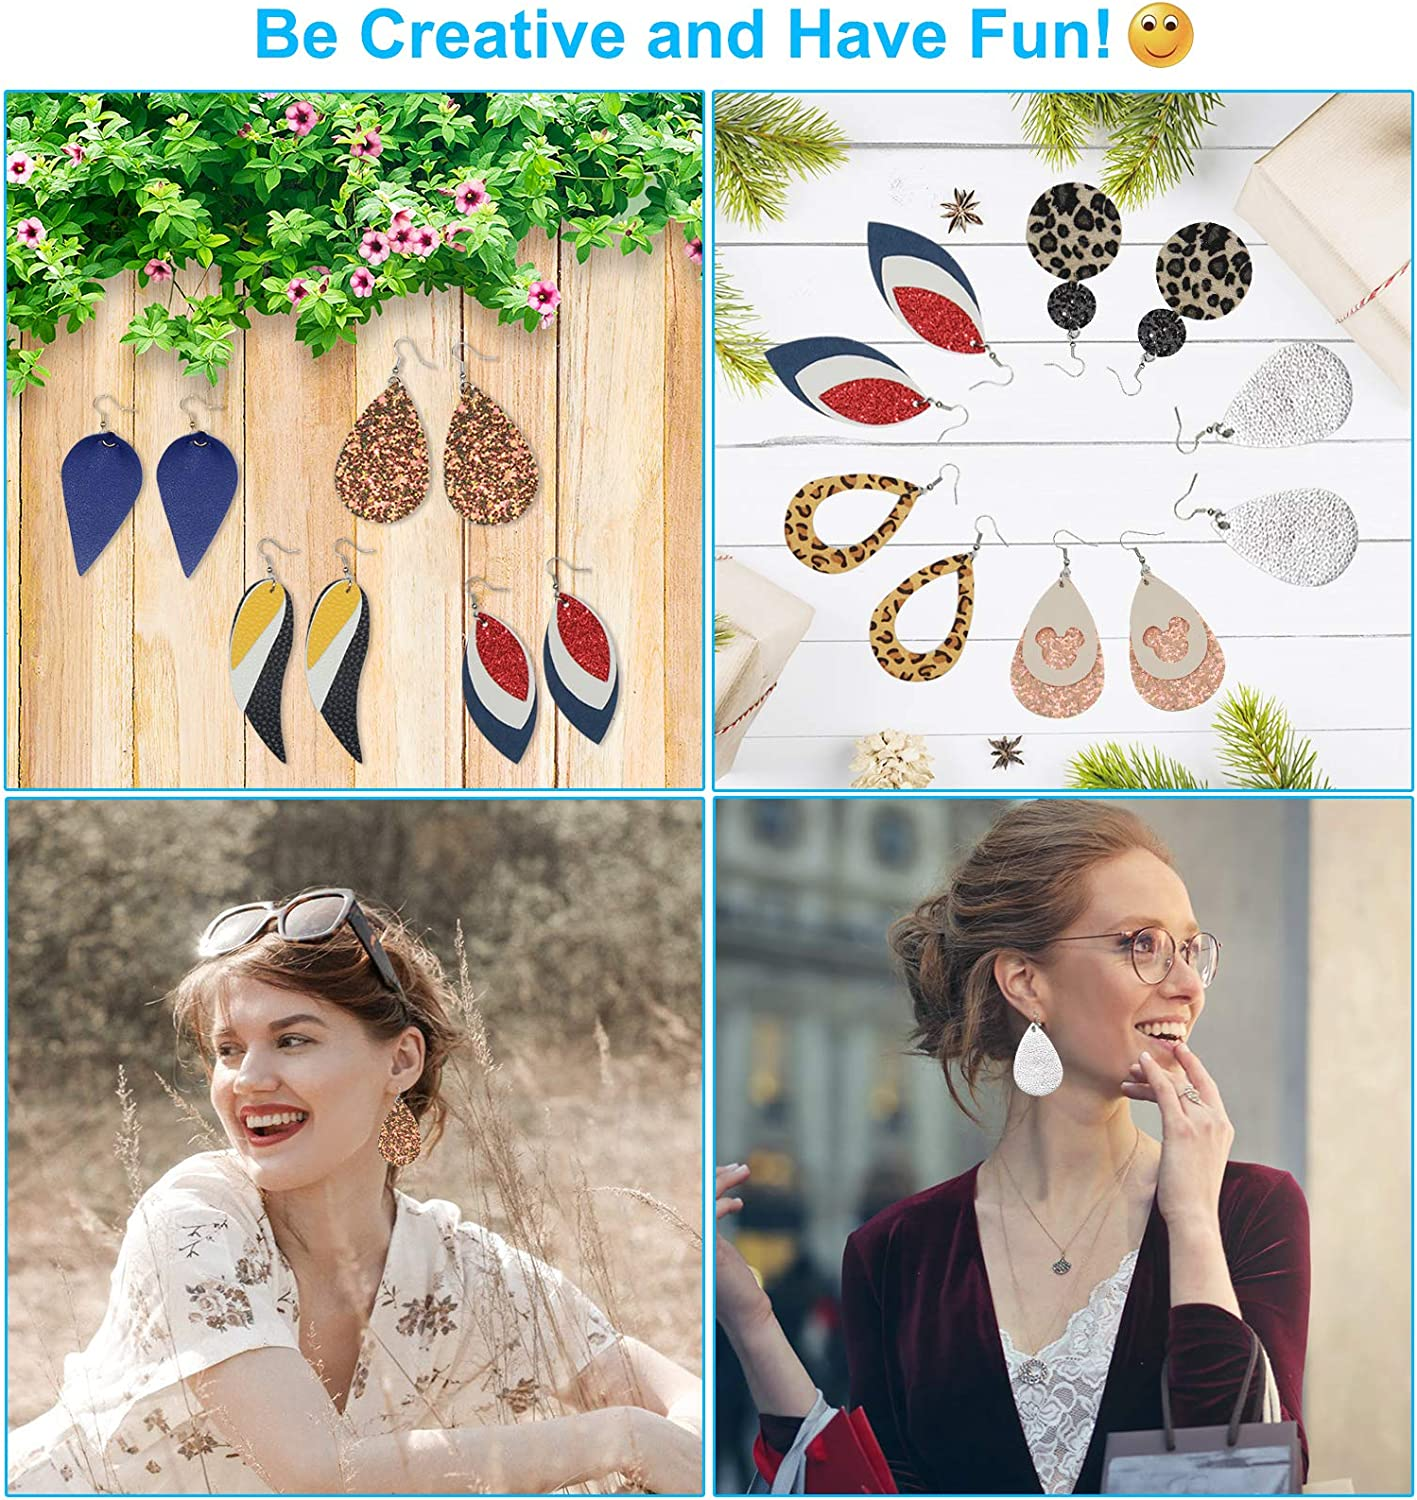 Leather Earring Making Kit Jewelry Hair Bows Crafts Supplies for Beginners 24pcs Faux Leather Sheets 8.3 x 6.3 Each Fabric and Tool for DIY Earrings with Instructions and Templates